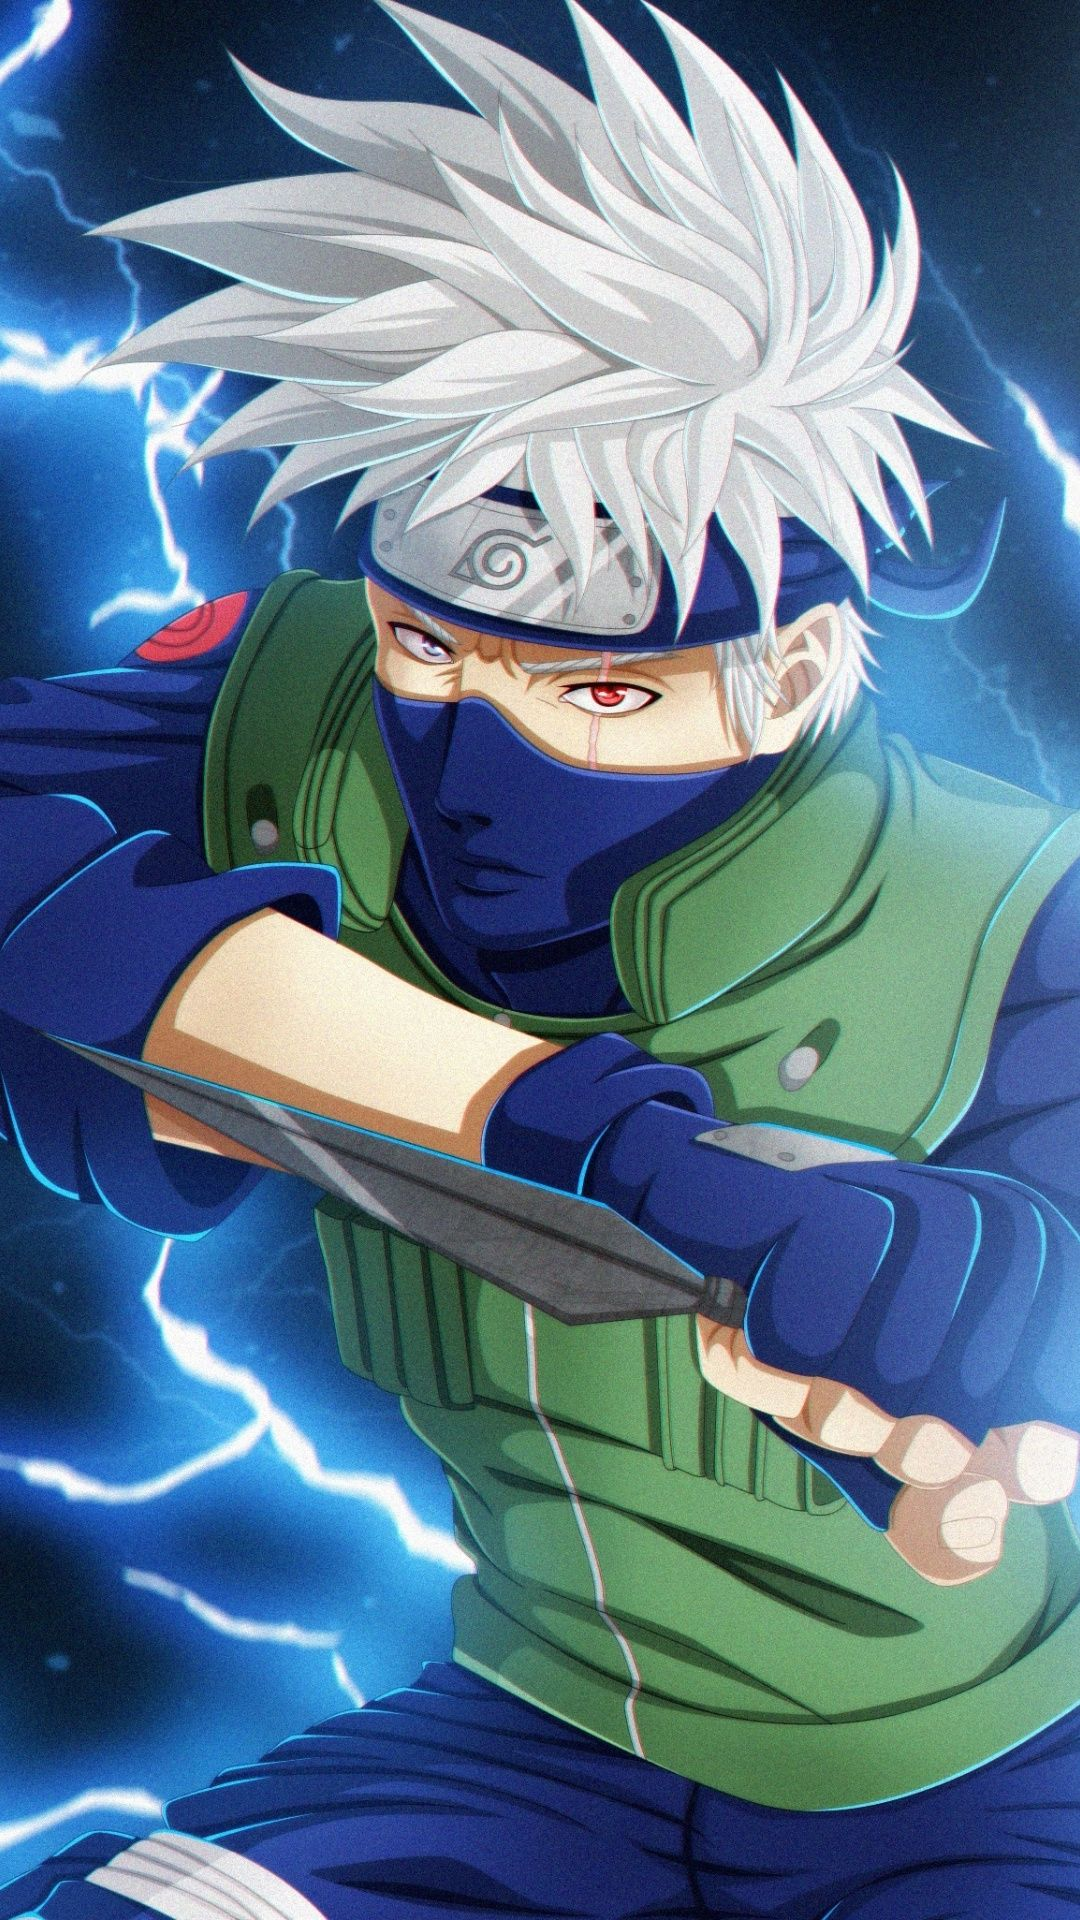 Anime, Kakashi Hatake, white hair, anime boy, art